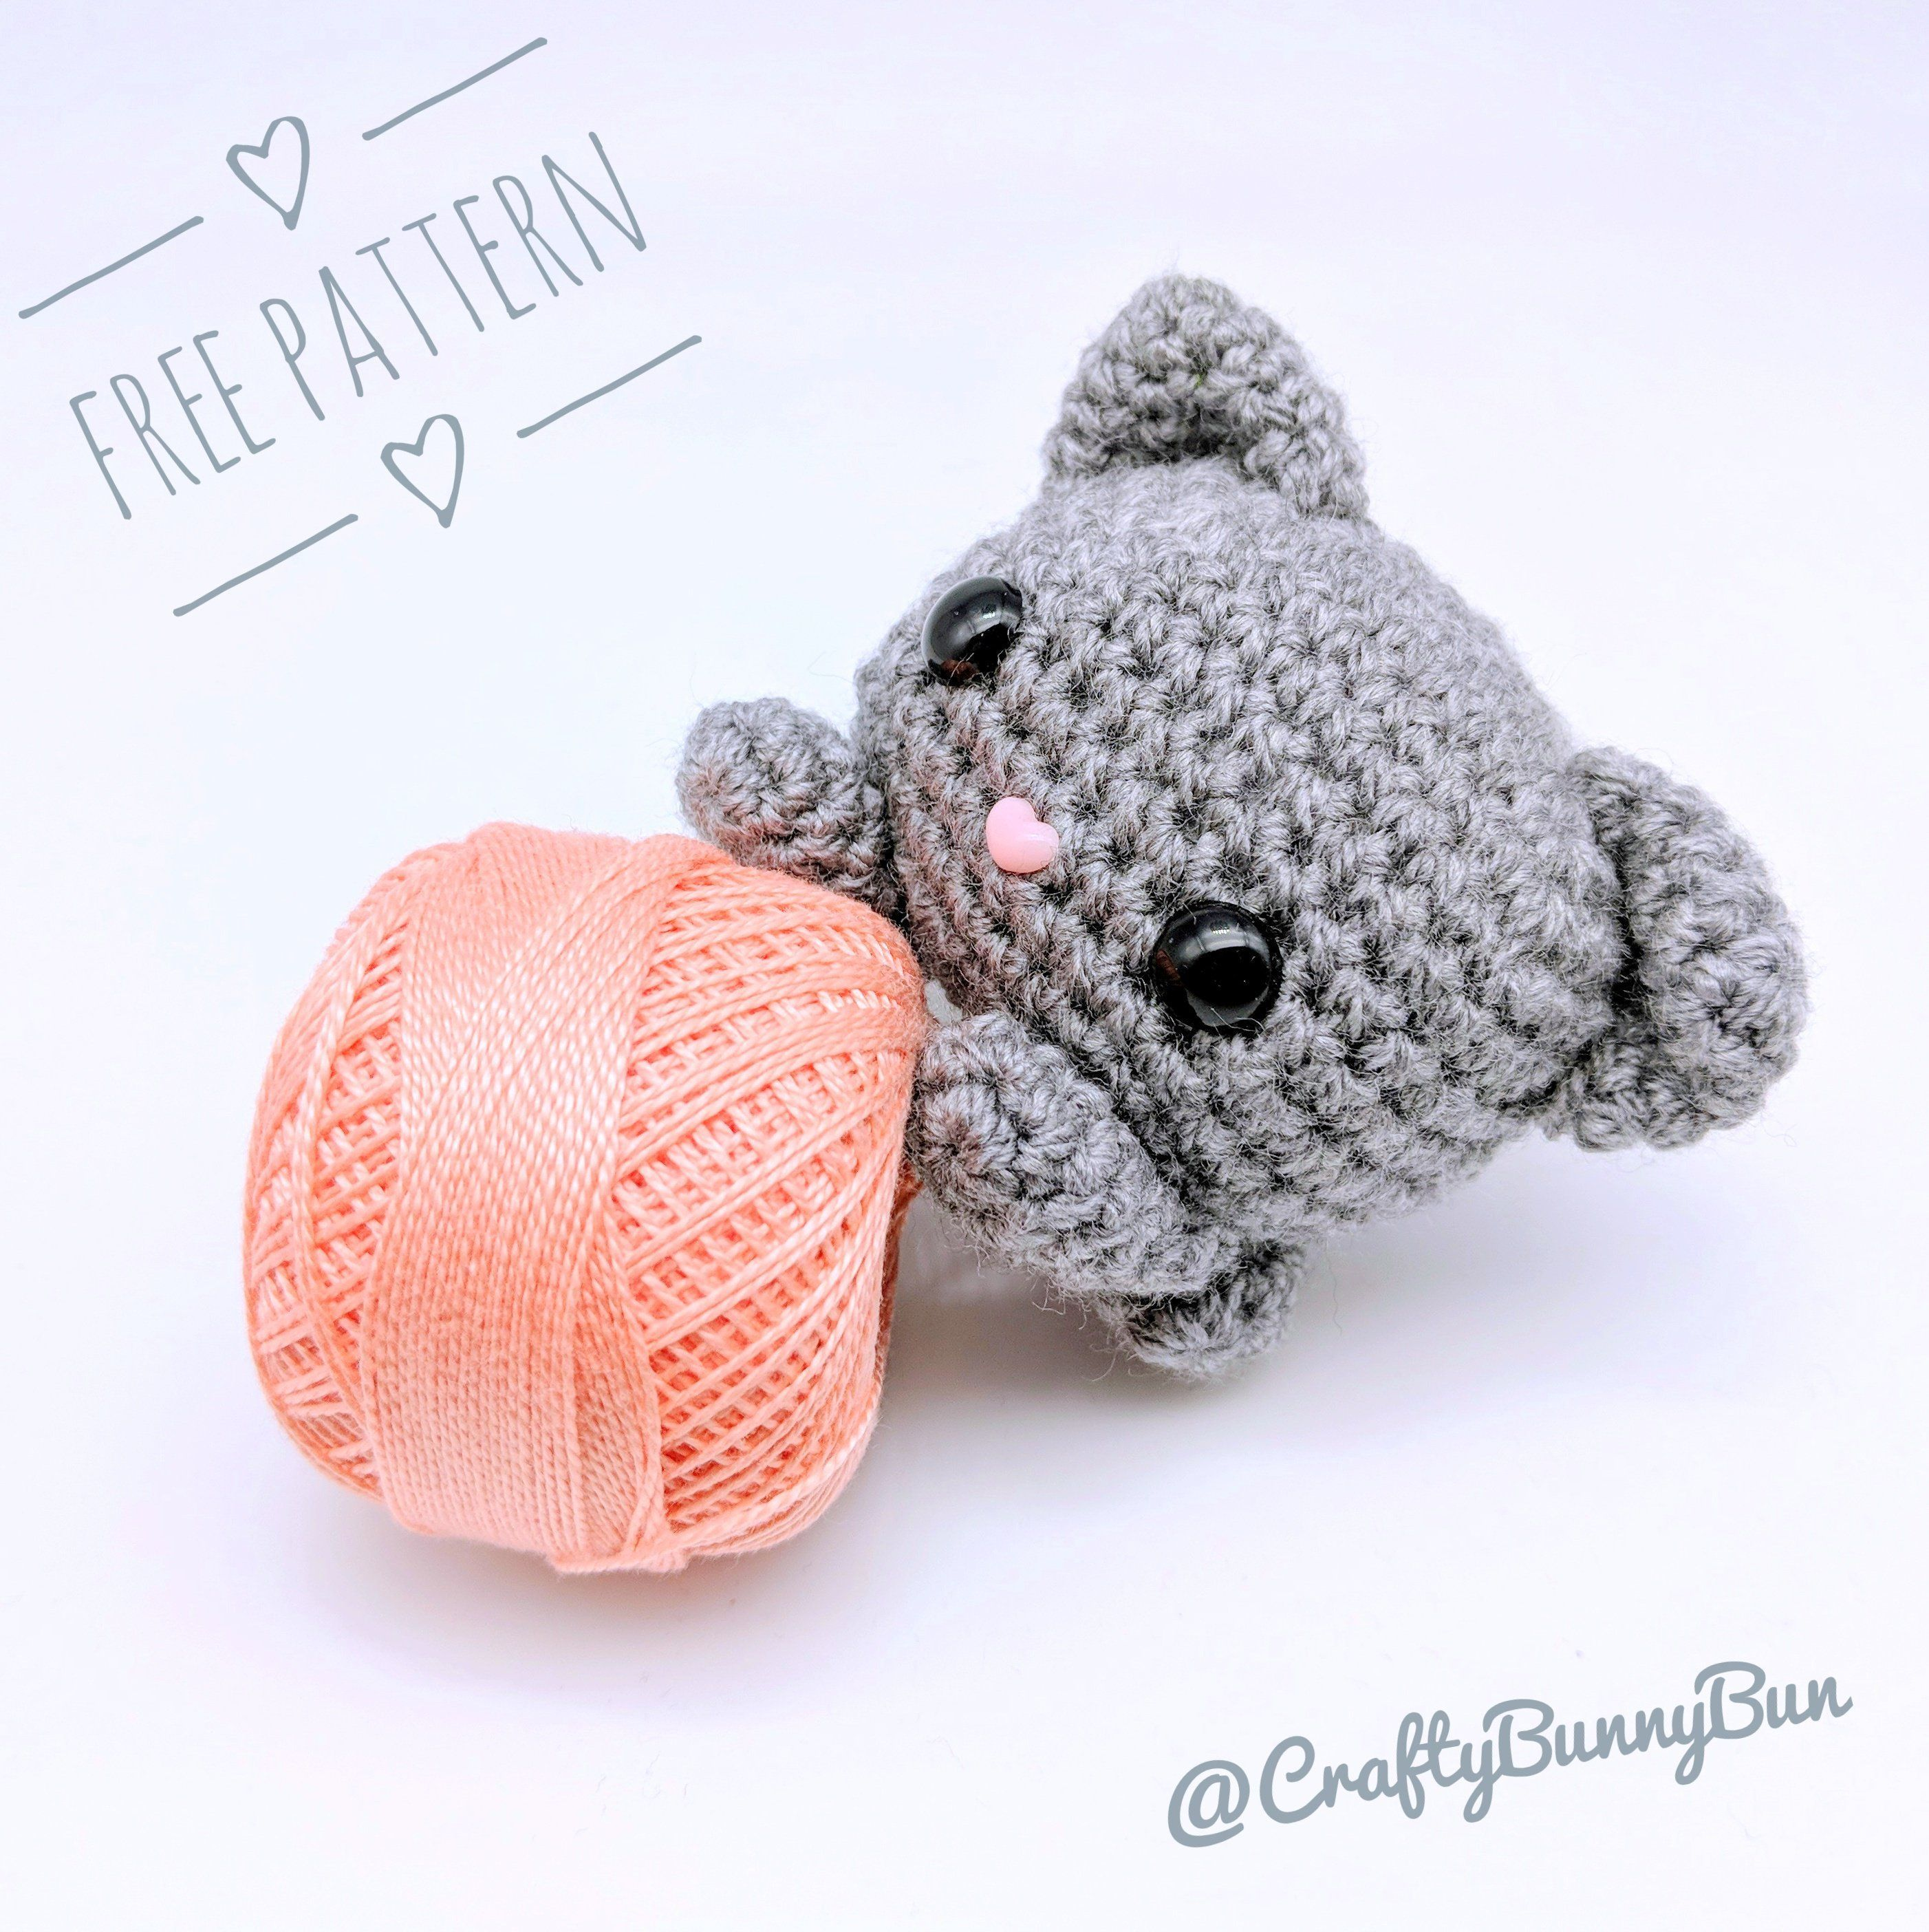 Super easy and fun free amigurumi pattern to make. It's so easy that you won't stop at one kitty. Designed to be as simple as possible without compromising on the cuteness.